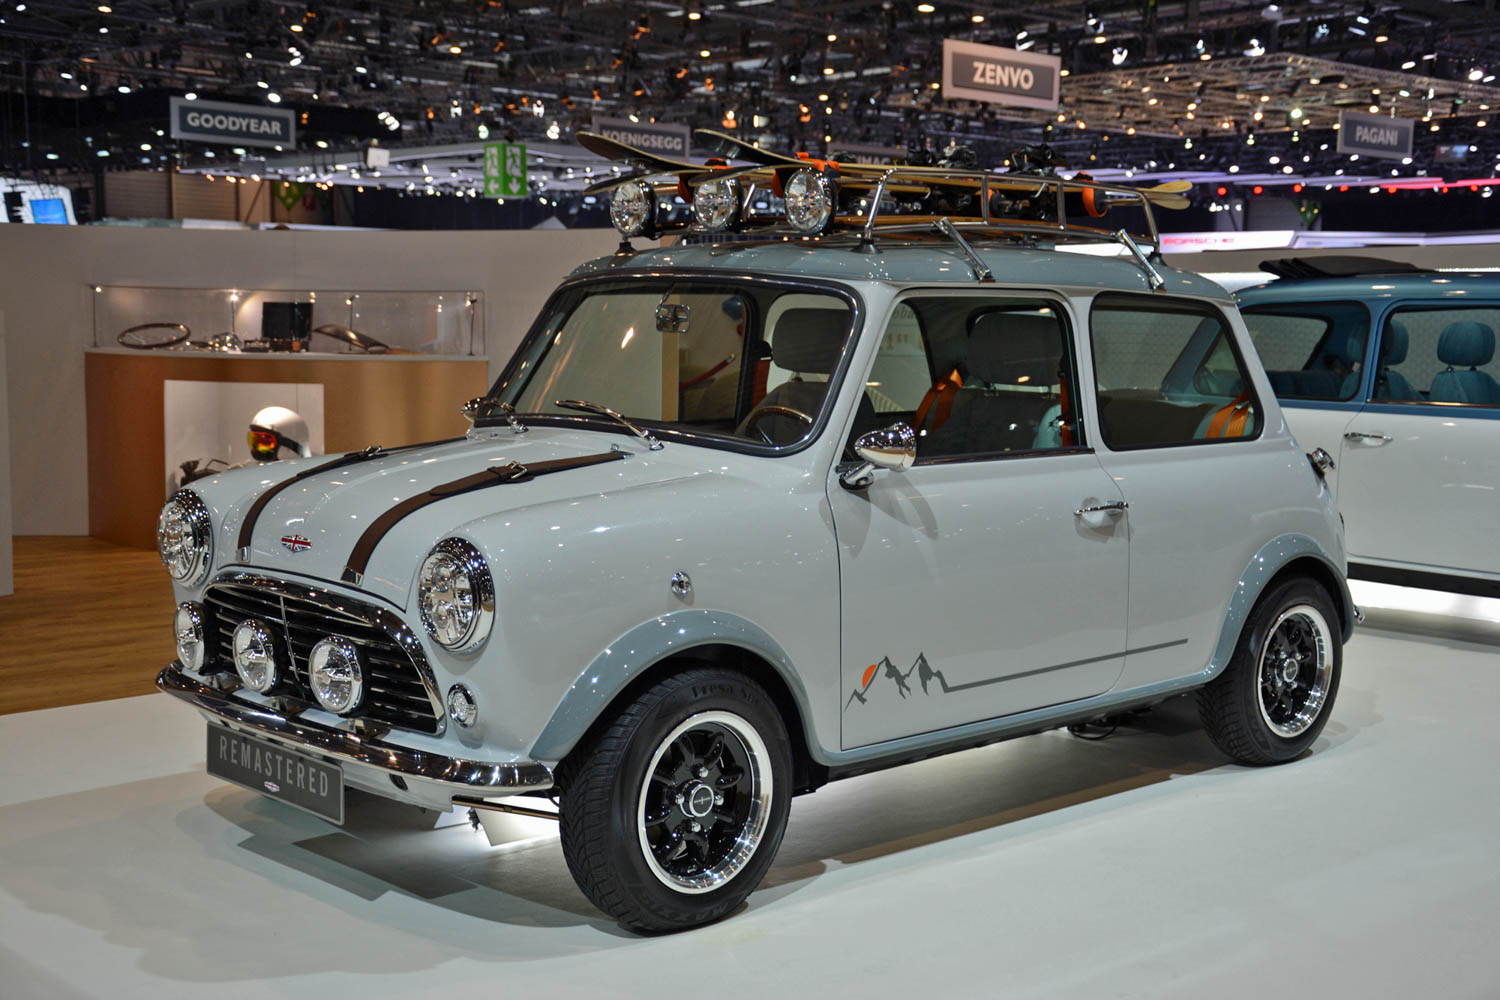 David Brown Automotive Mini Remastered front 3/4